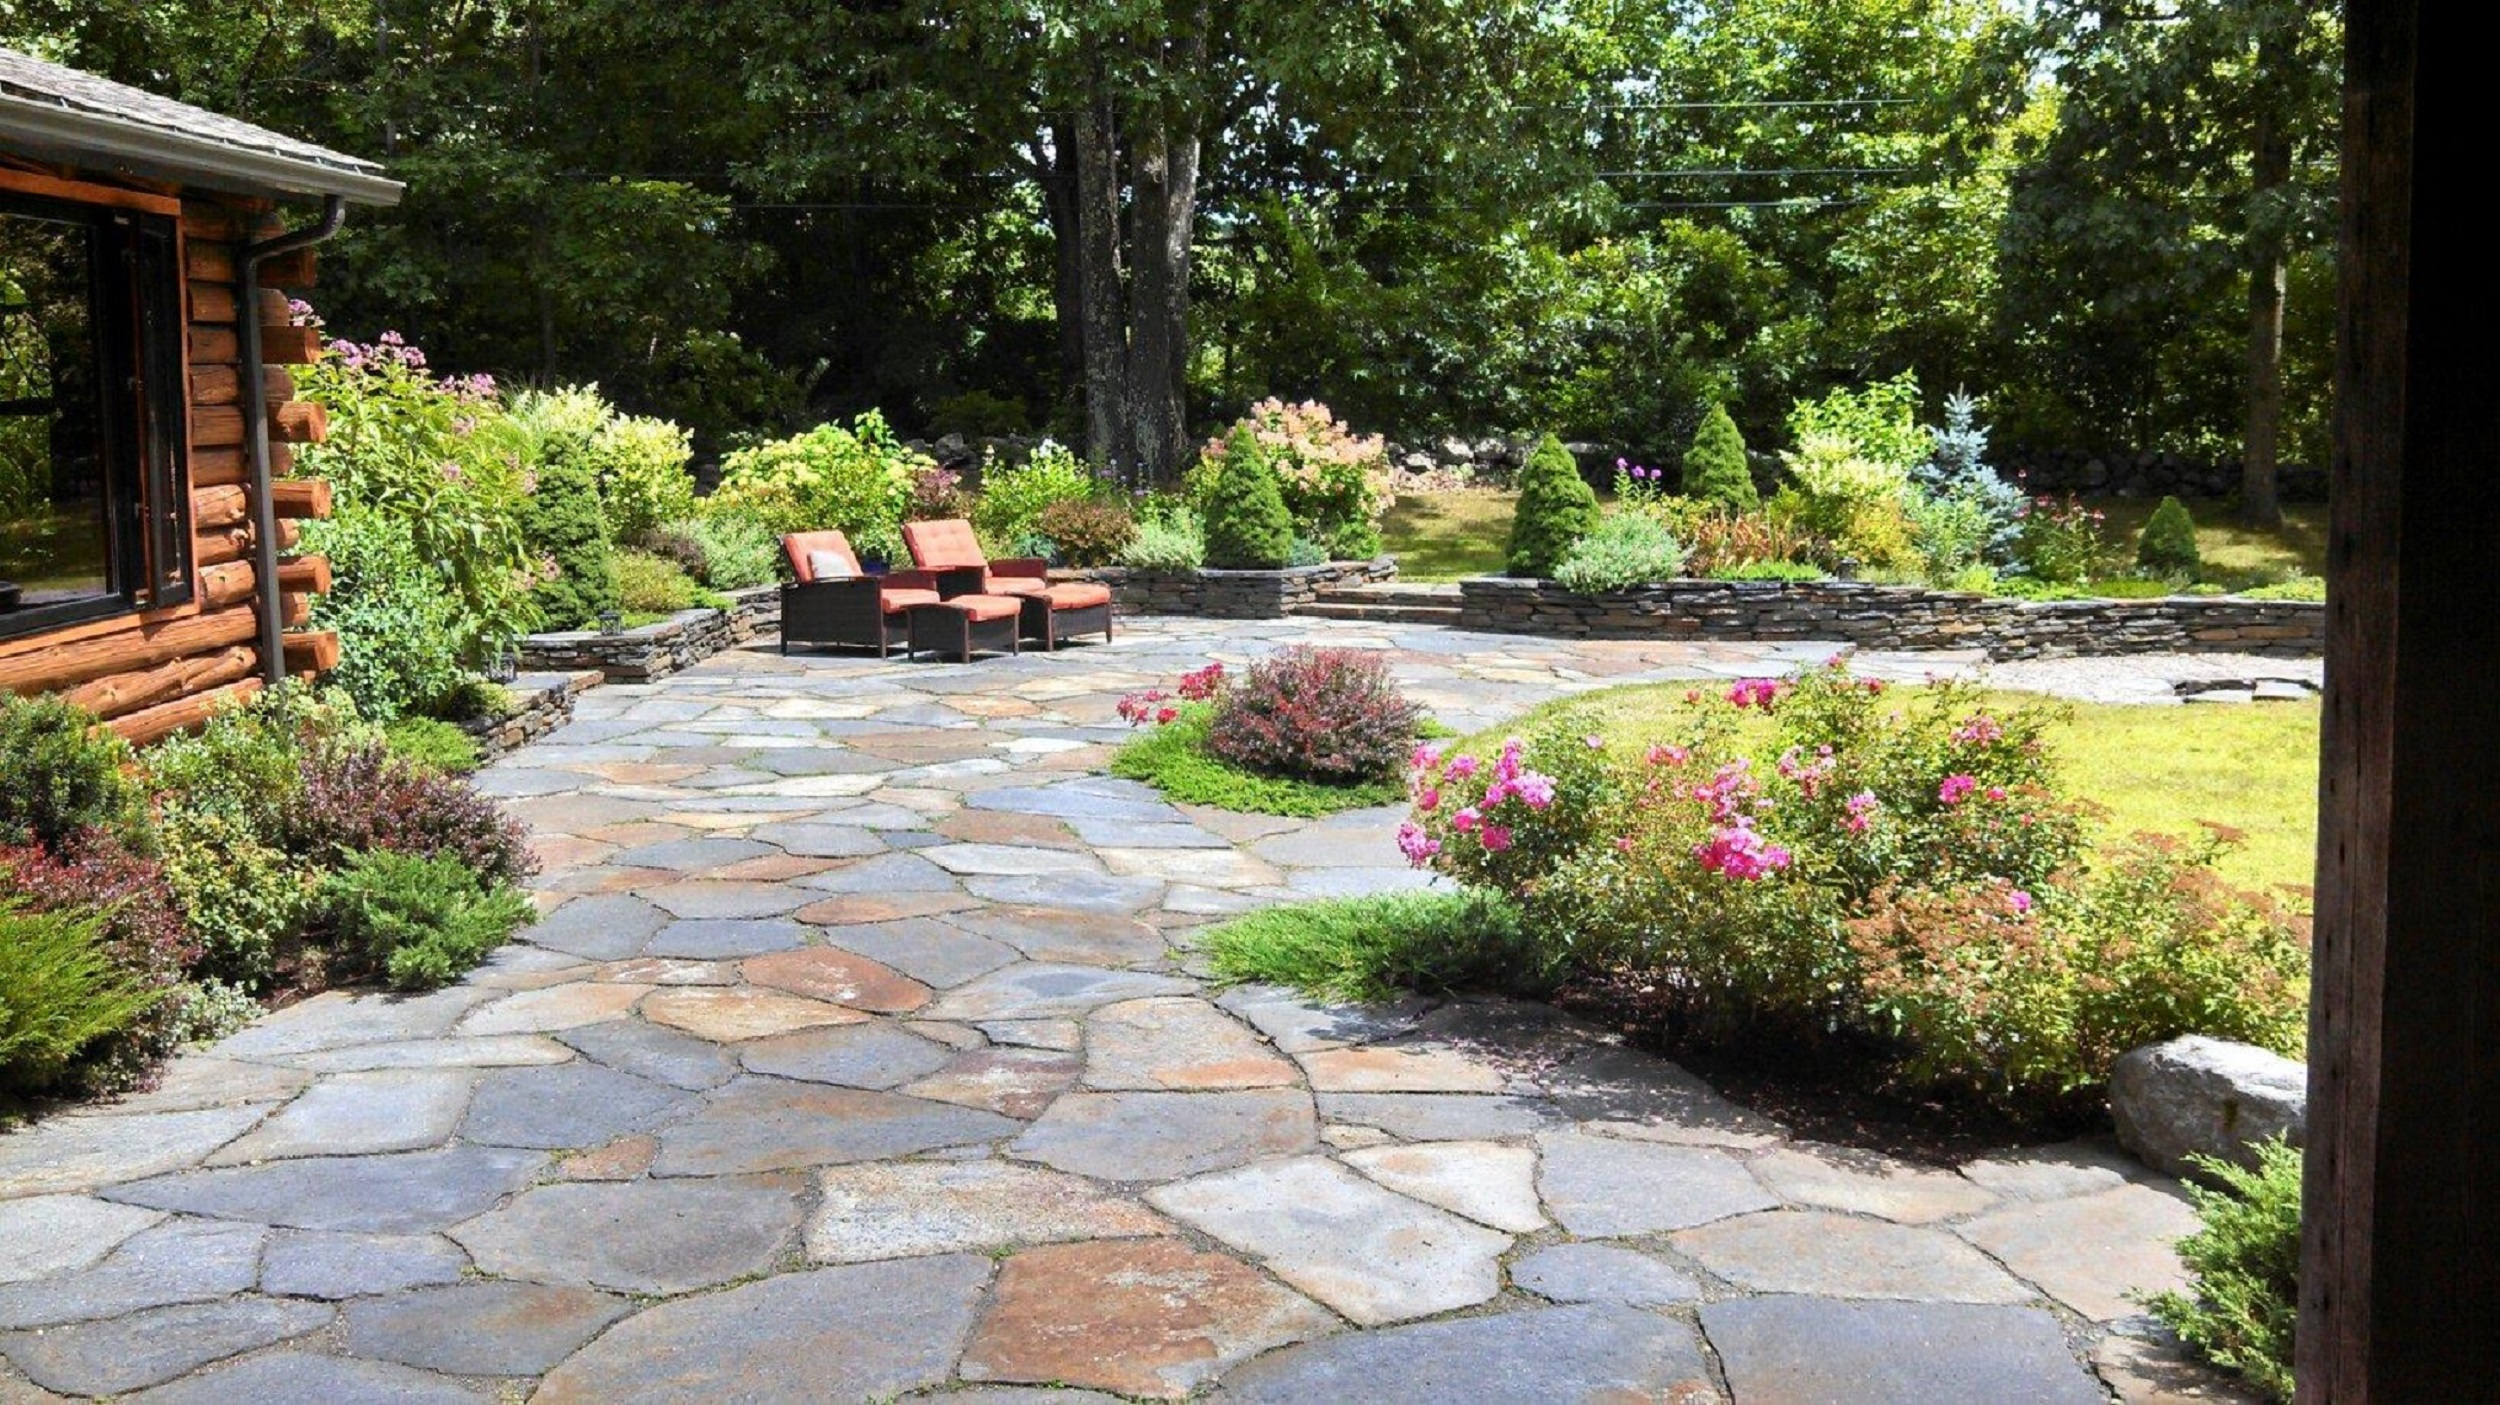 Garden patio patio slabs ebay roger gladwell garden for Garden patio design ideas